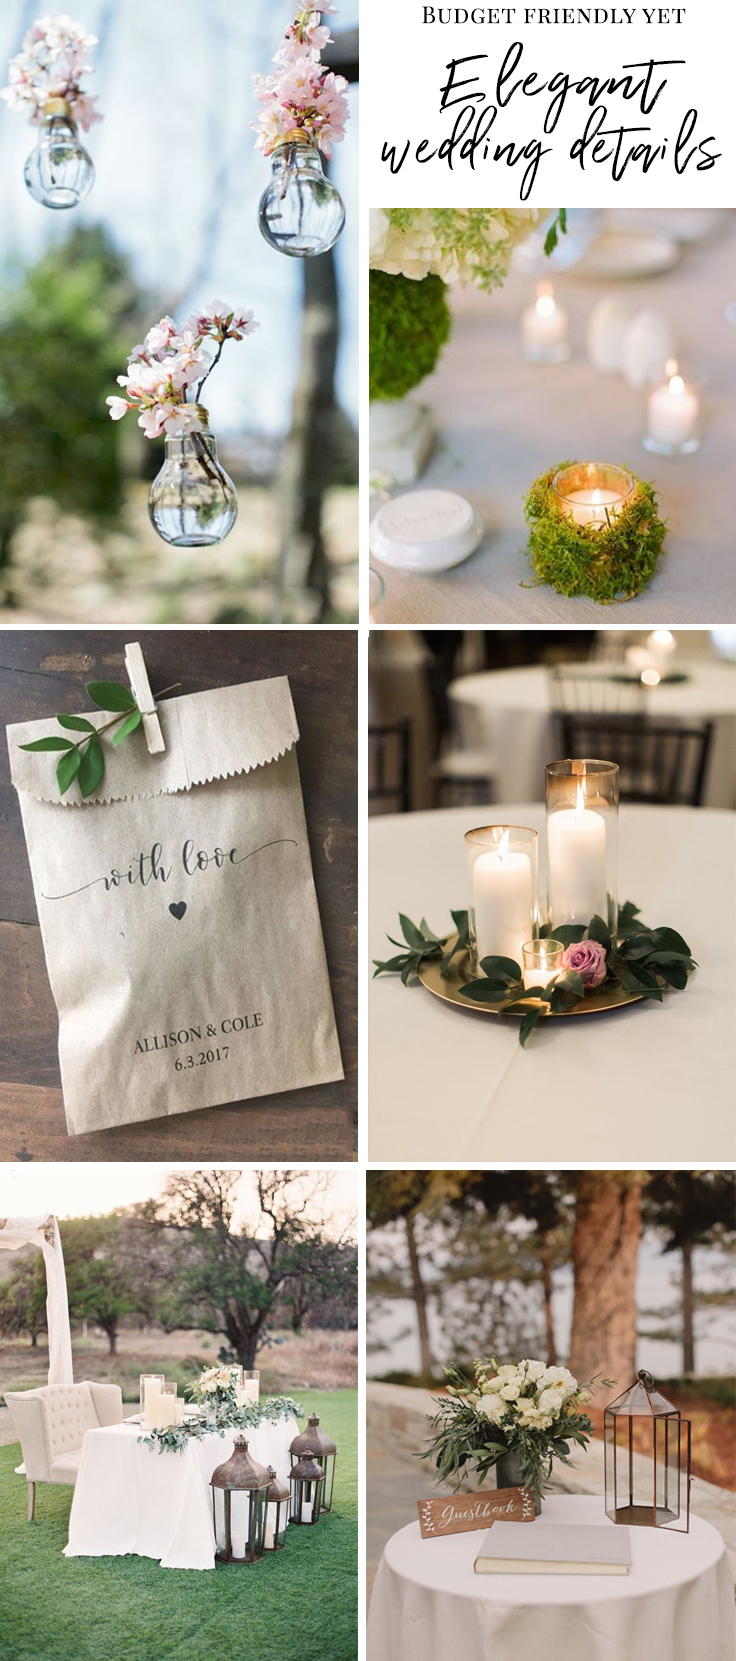 We tell you the details you can skip if you want true elegance at your wedding | This and more at www.SheerEverAfter.com